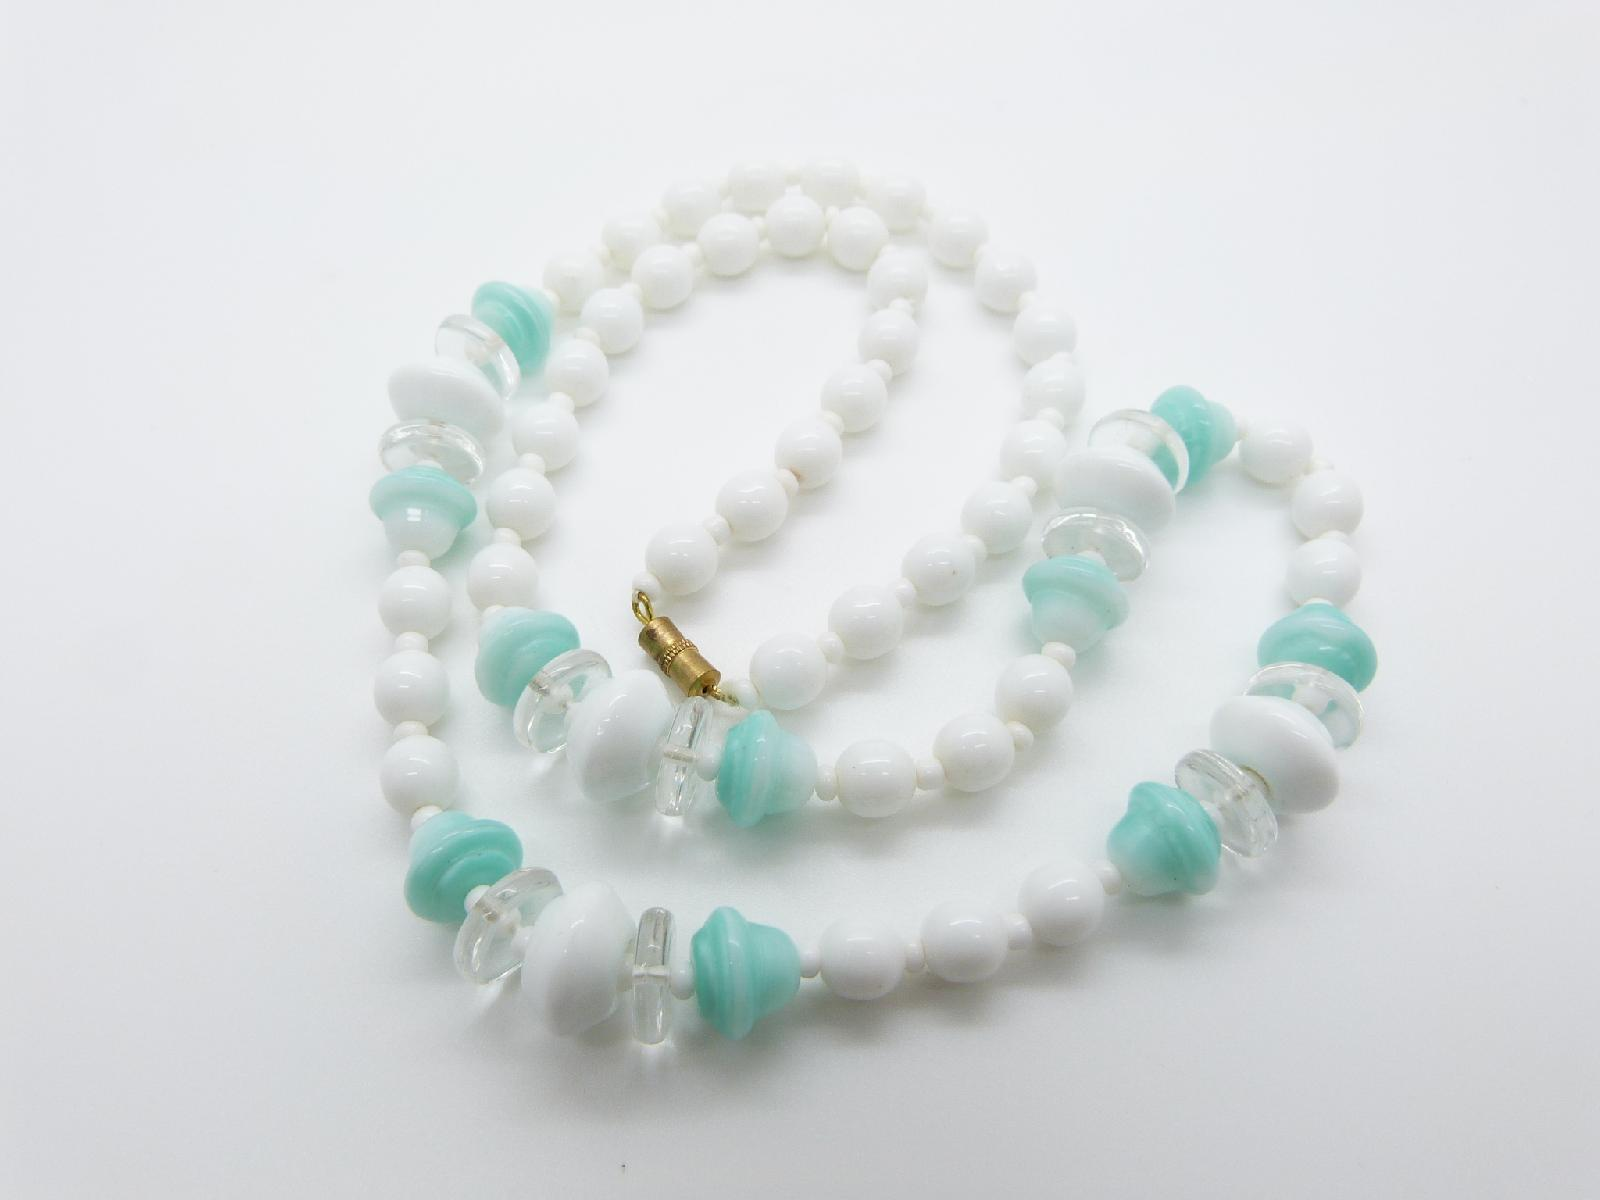 Vintage 50s Czech Fresh White and Mint Green Glass Bead Necklace 69cms